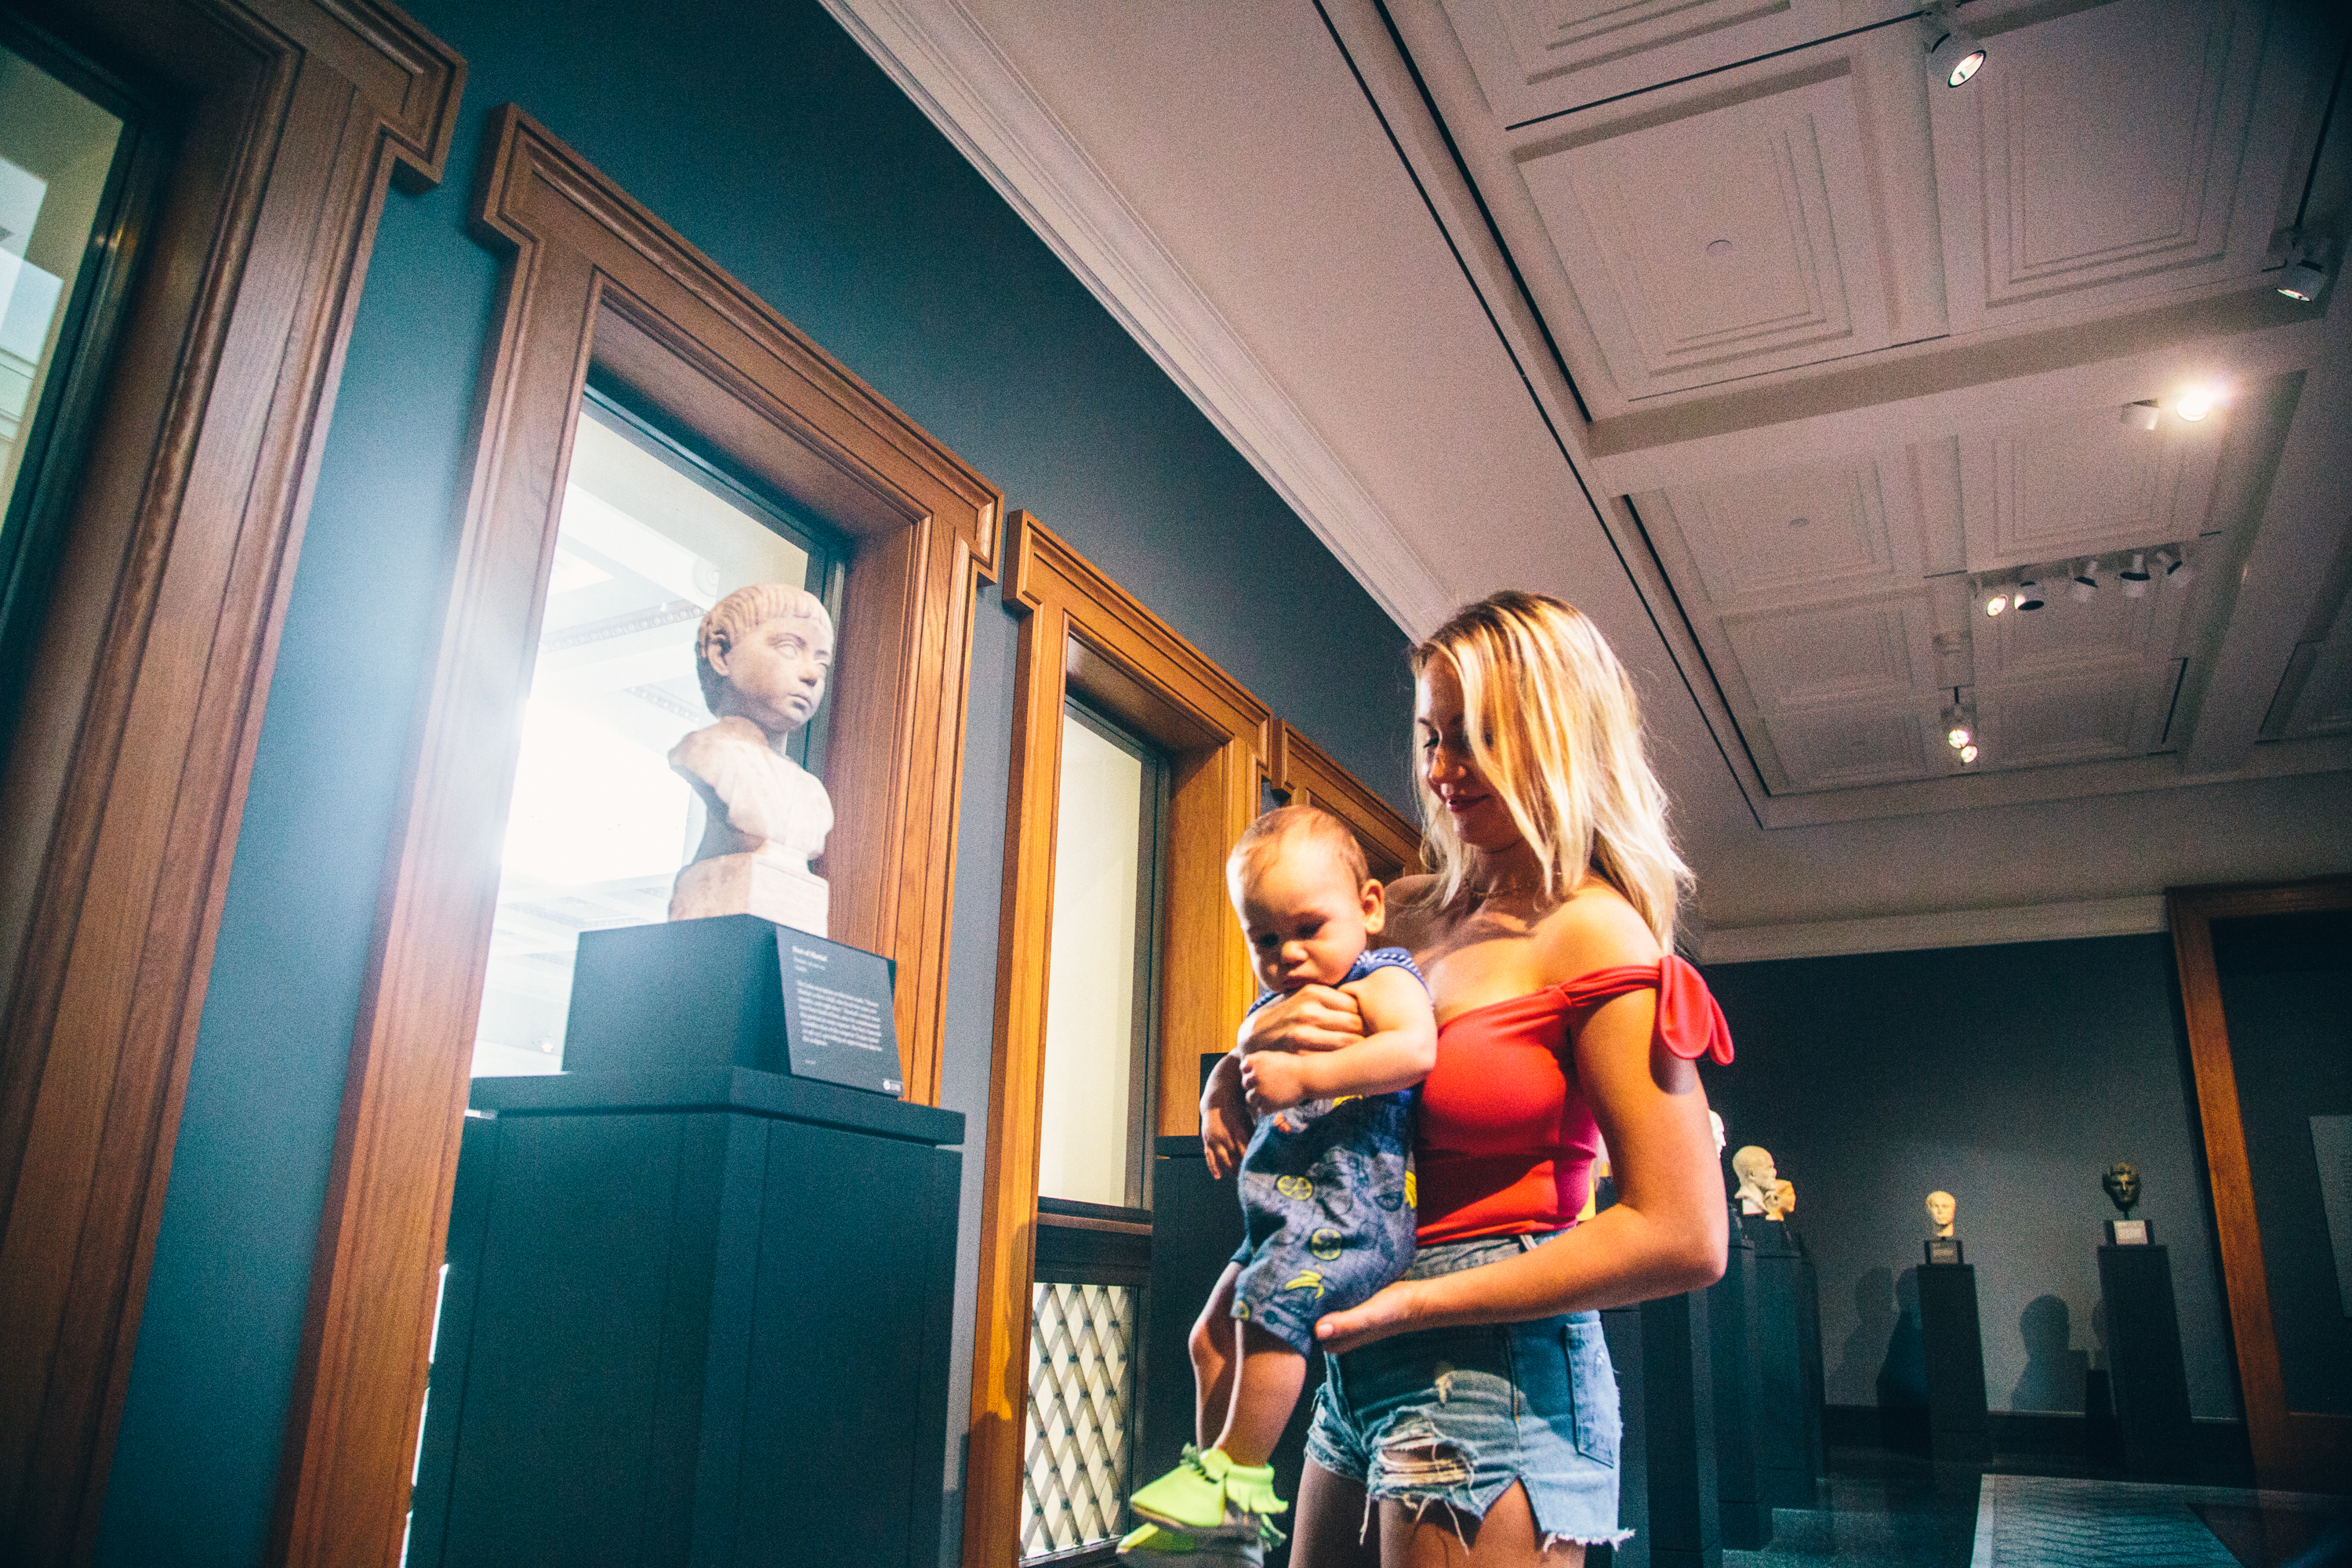 Diana-Milena-Sunkissed-Blonde-Visiting-Getty-Villa-Museum-Baby-Kids_